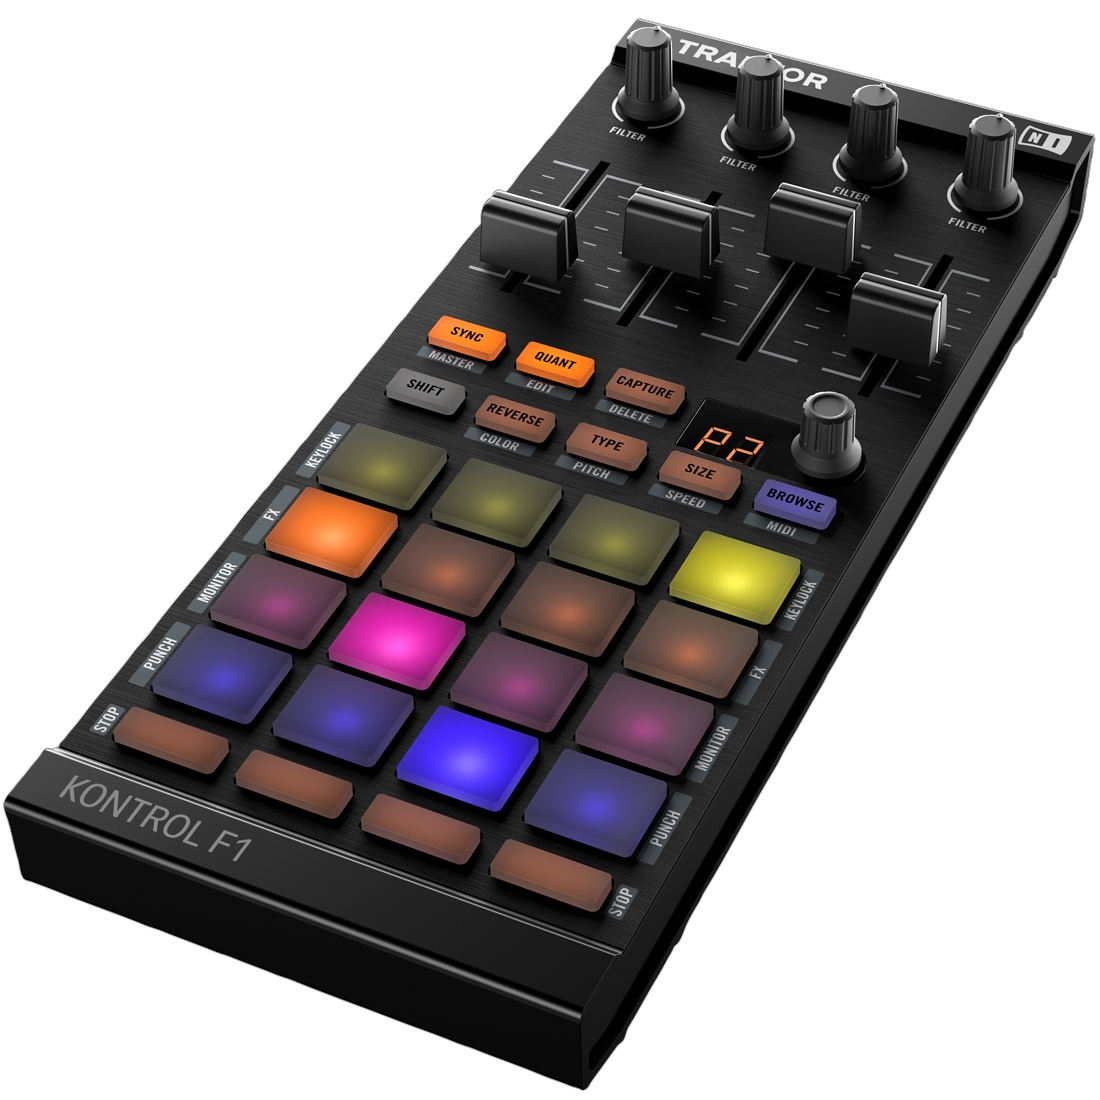 native instruments traktor kontrol f1 usb dj midi pad controller ebay. Black Bedroom Furniture Sets. Home Design Ideas